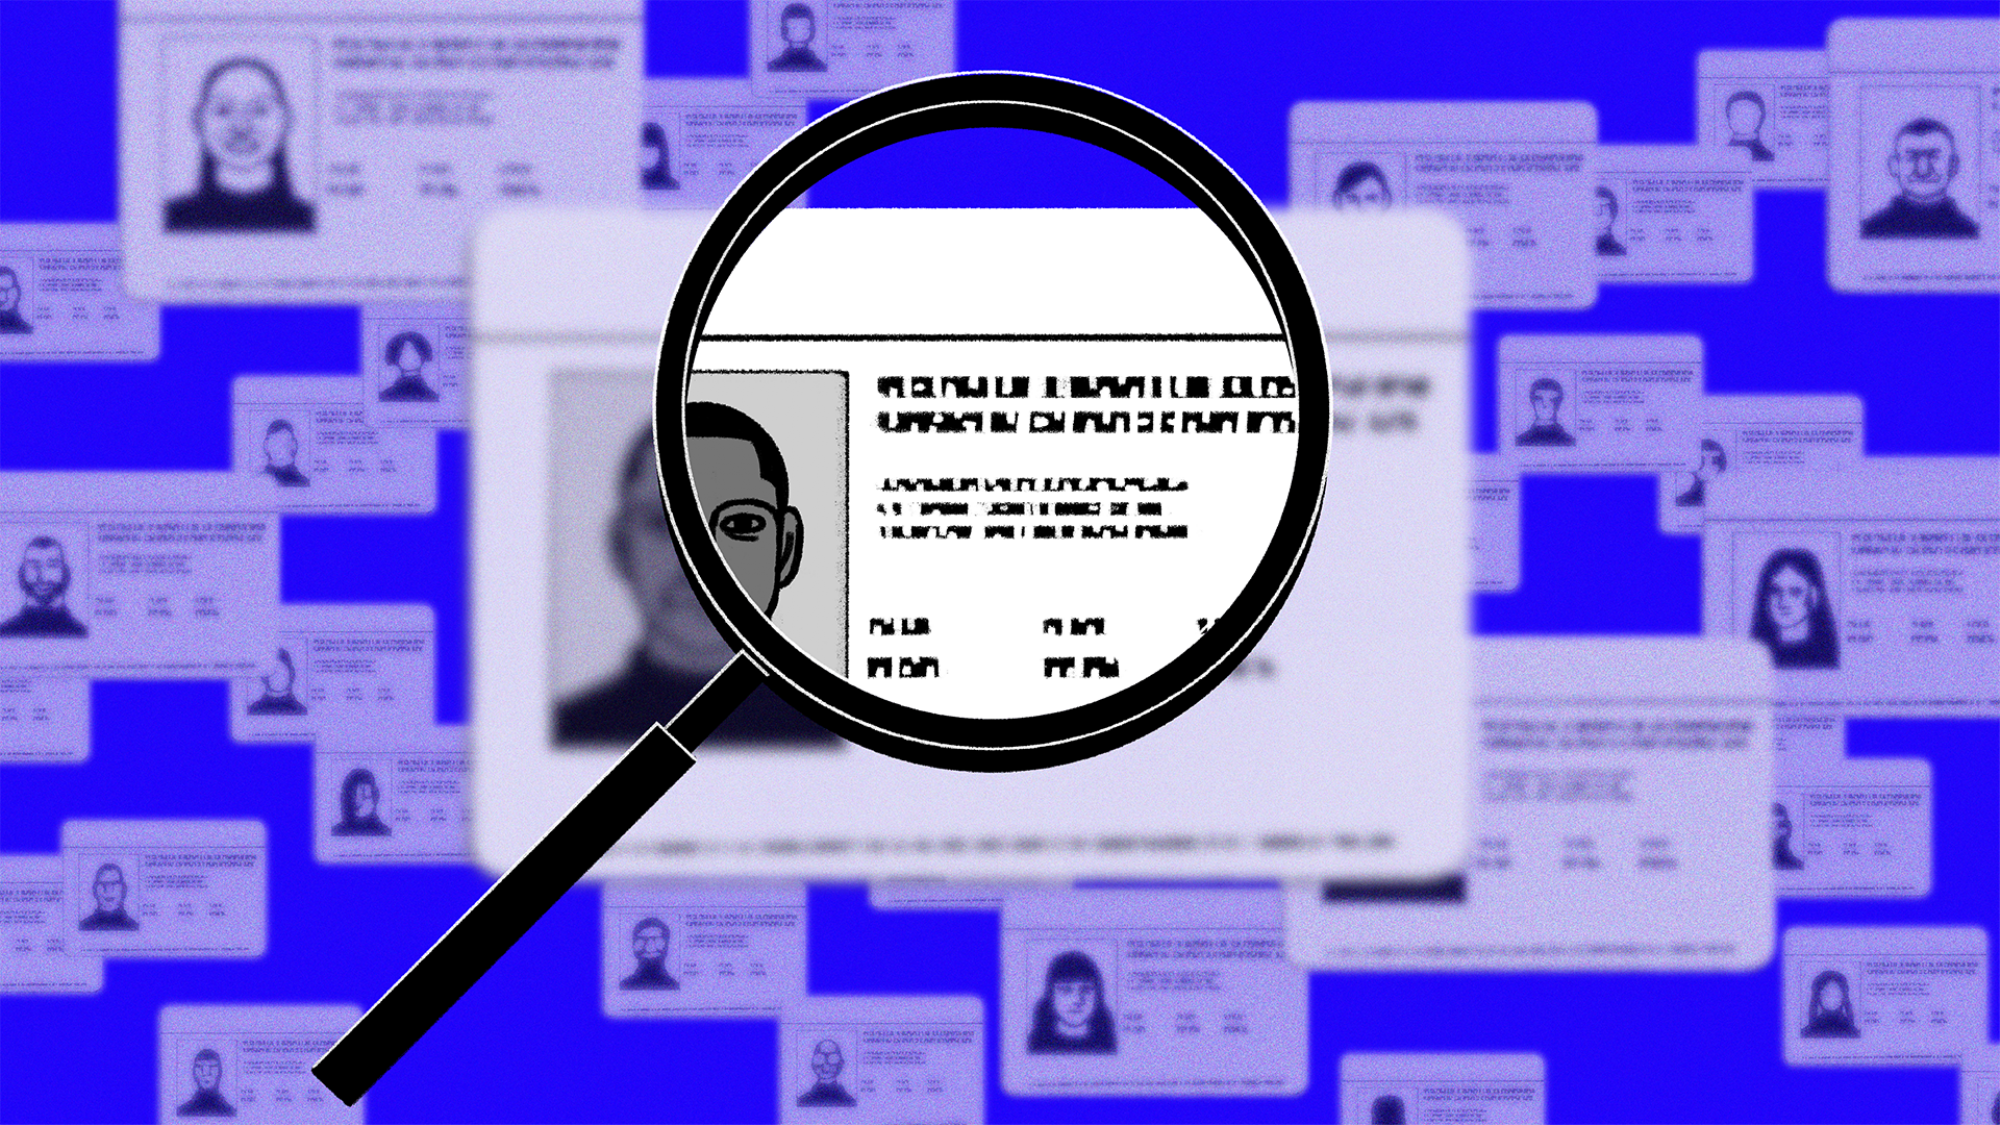 Third Party Dmv >> Dmvs Are Selling Your Data To Private Investigators Vice